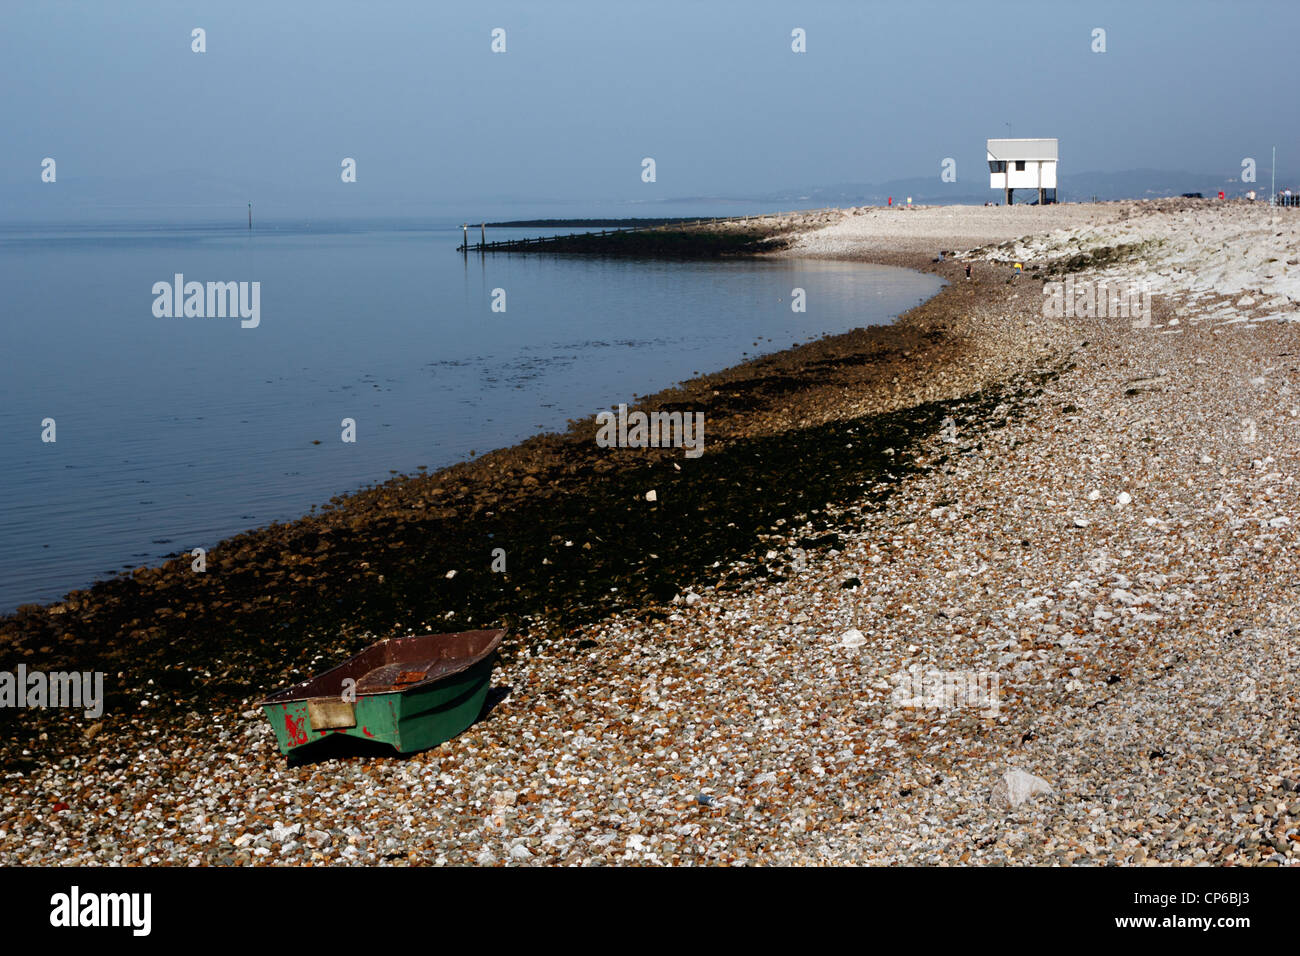 Small green dinghy on the shingle shore at Morecambe, Lancashire. - Stock Image